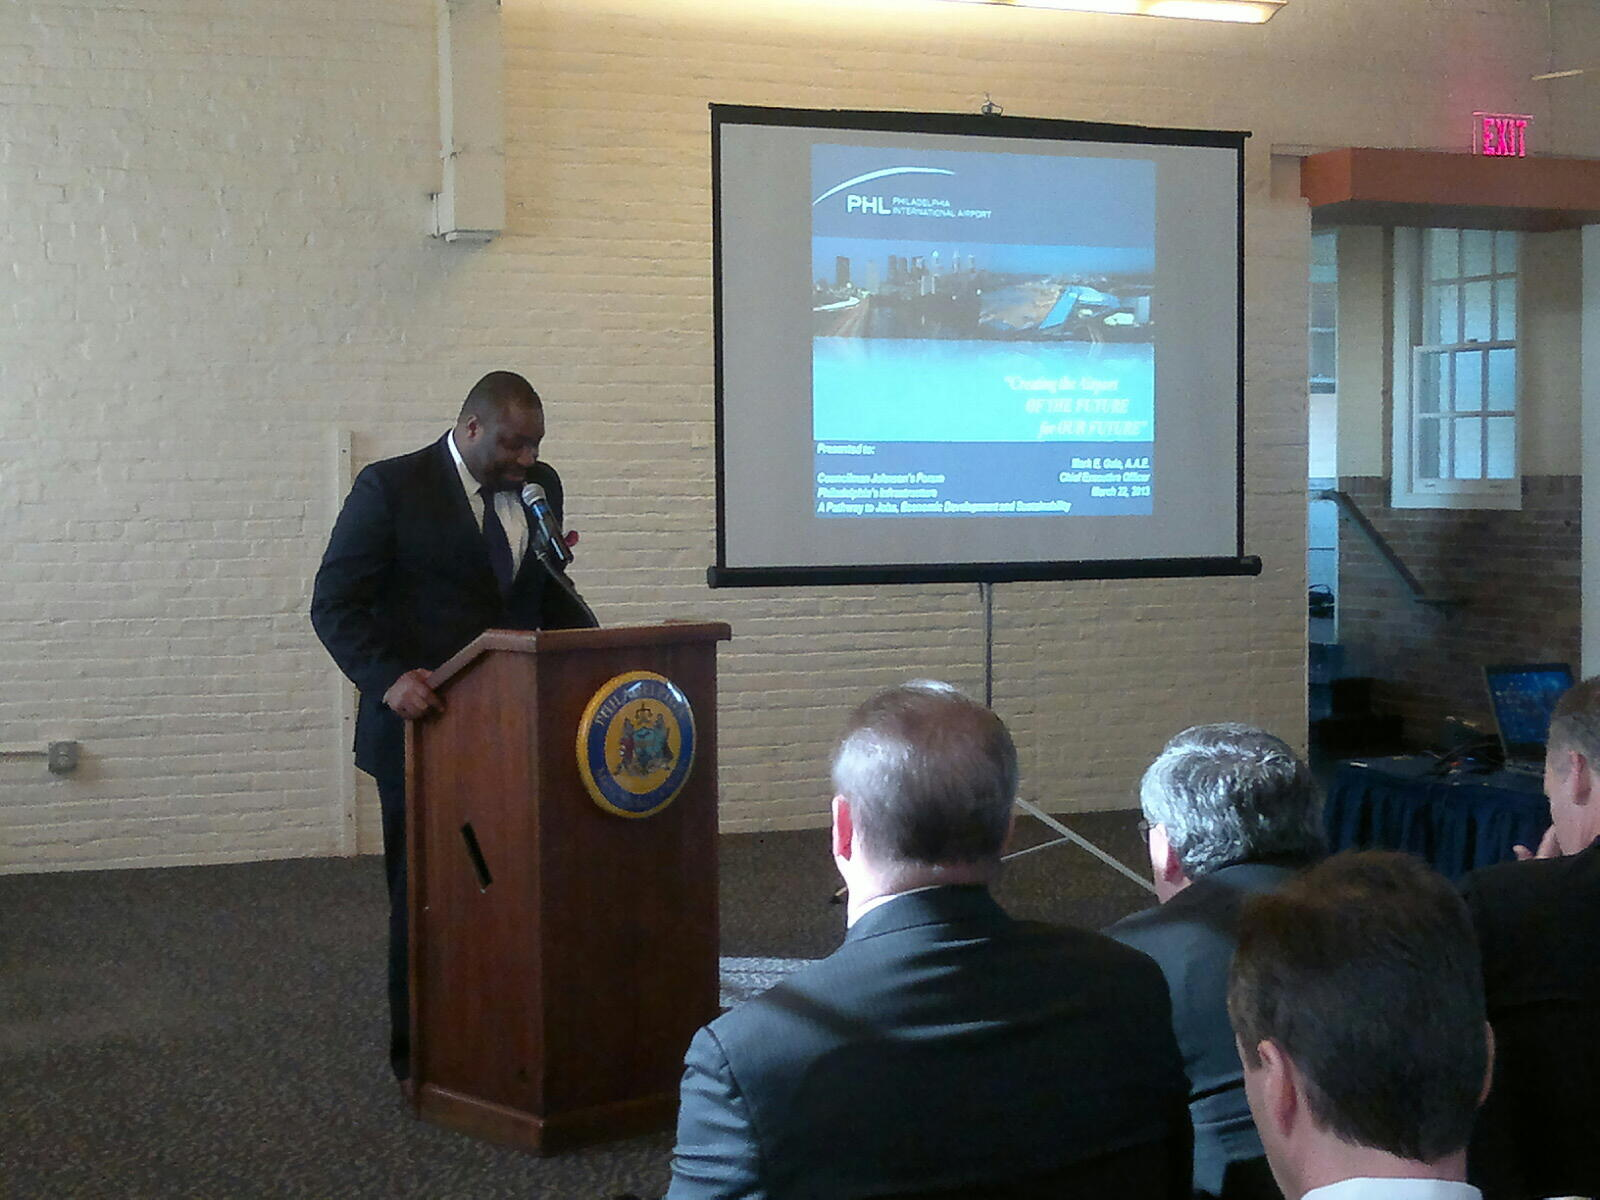 Twitter / CouncilmanKJ: Councilman welcomes guests ...